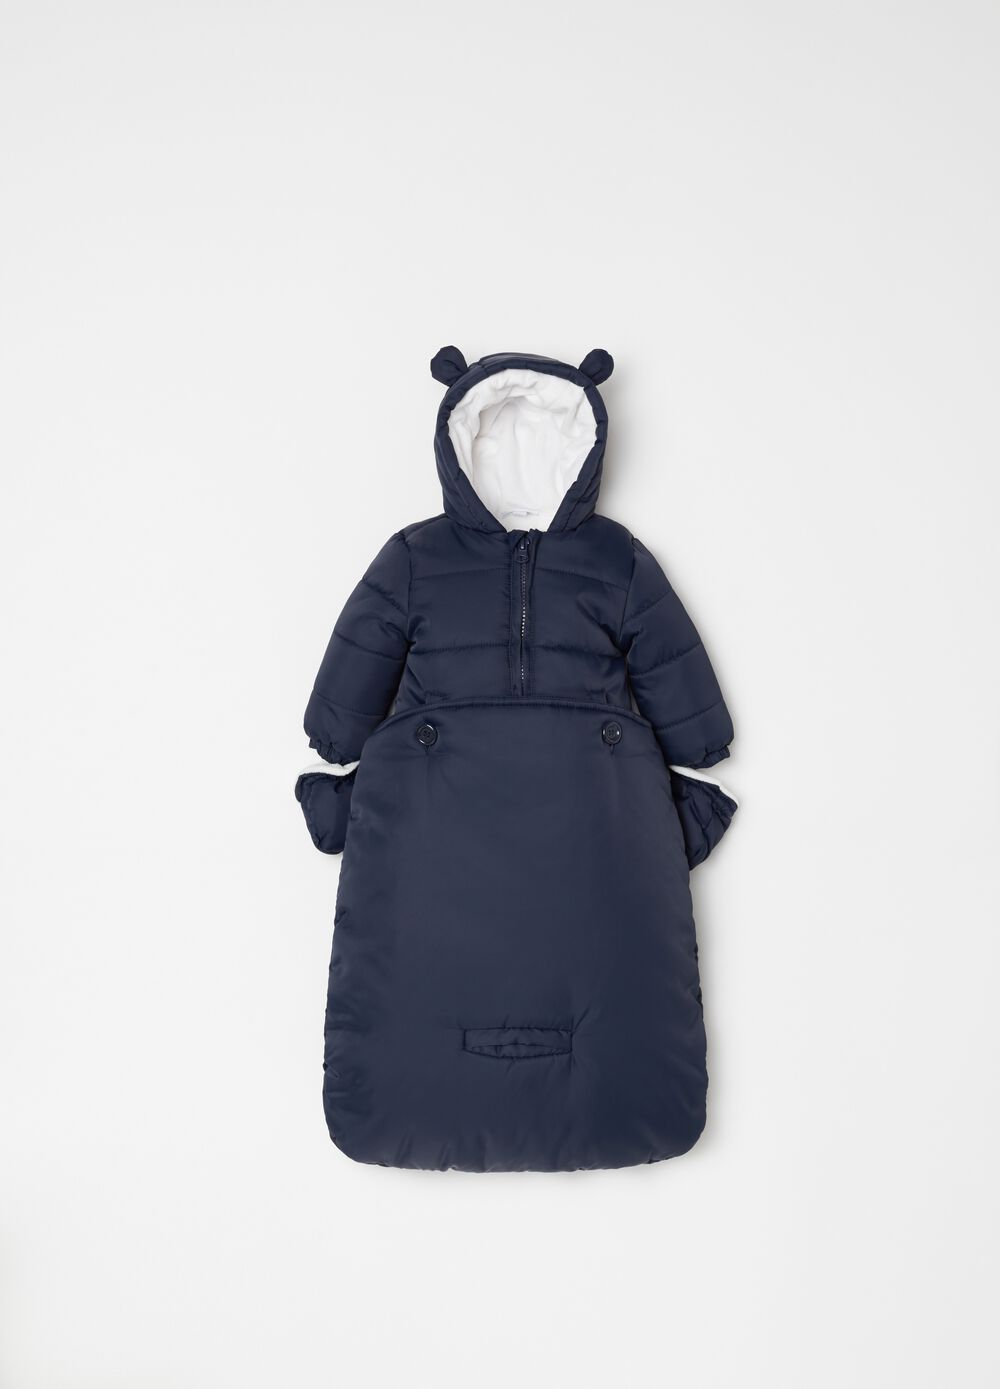 2 in 1 jacket and baby sleeping bag